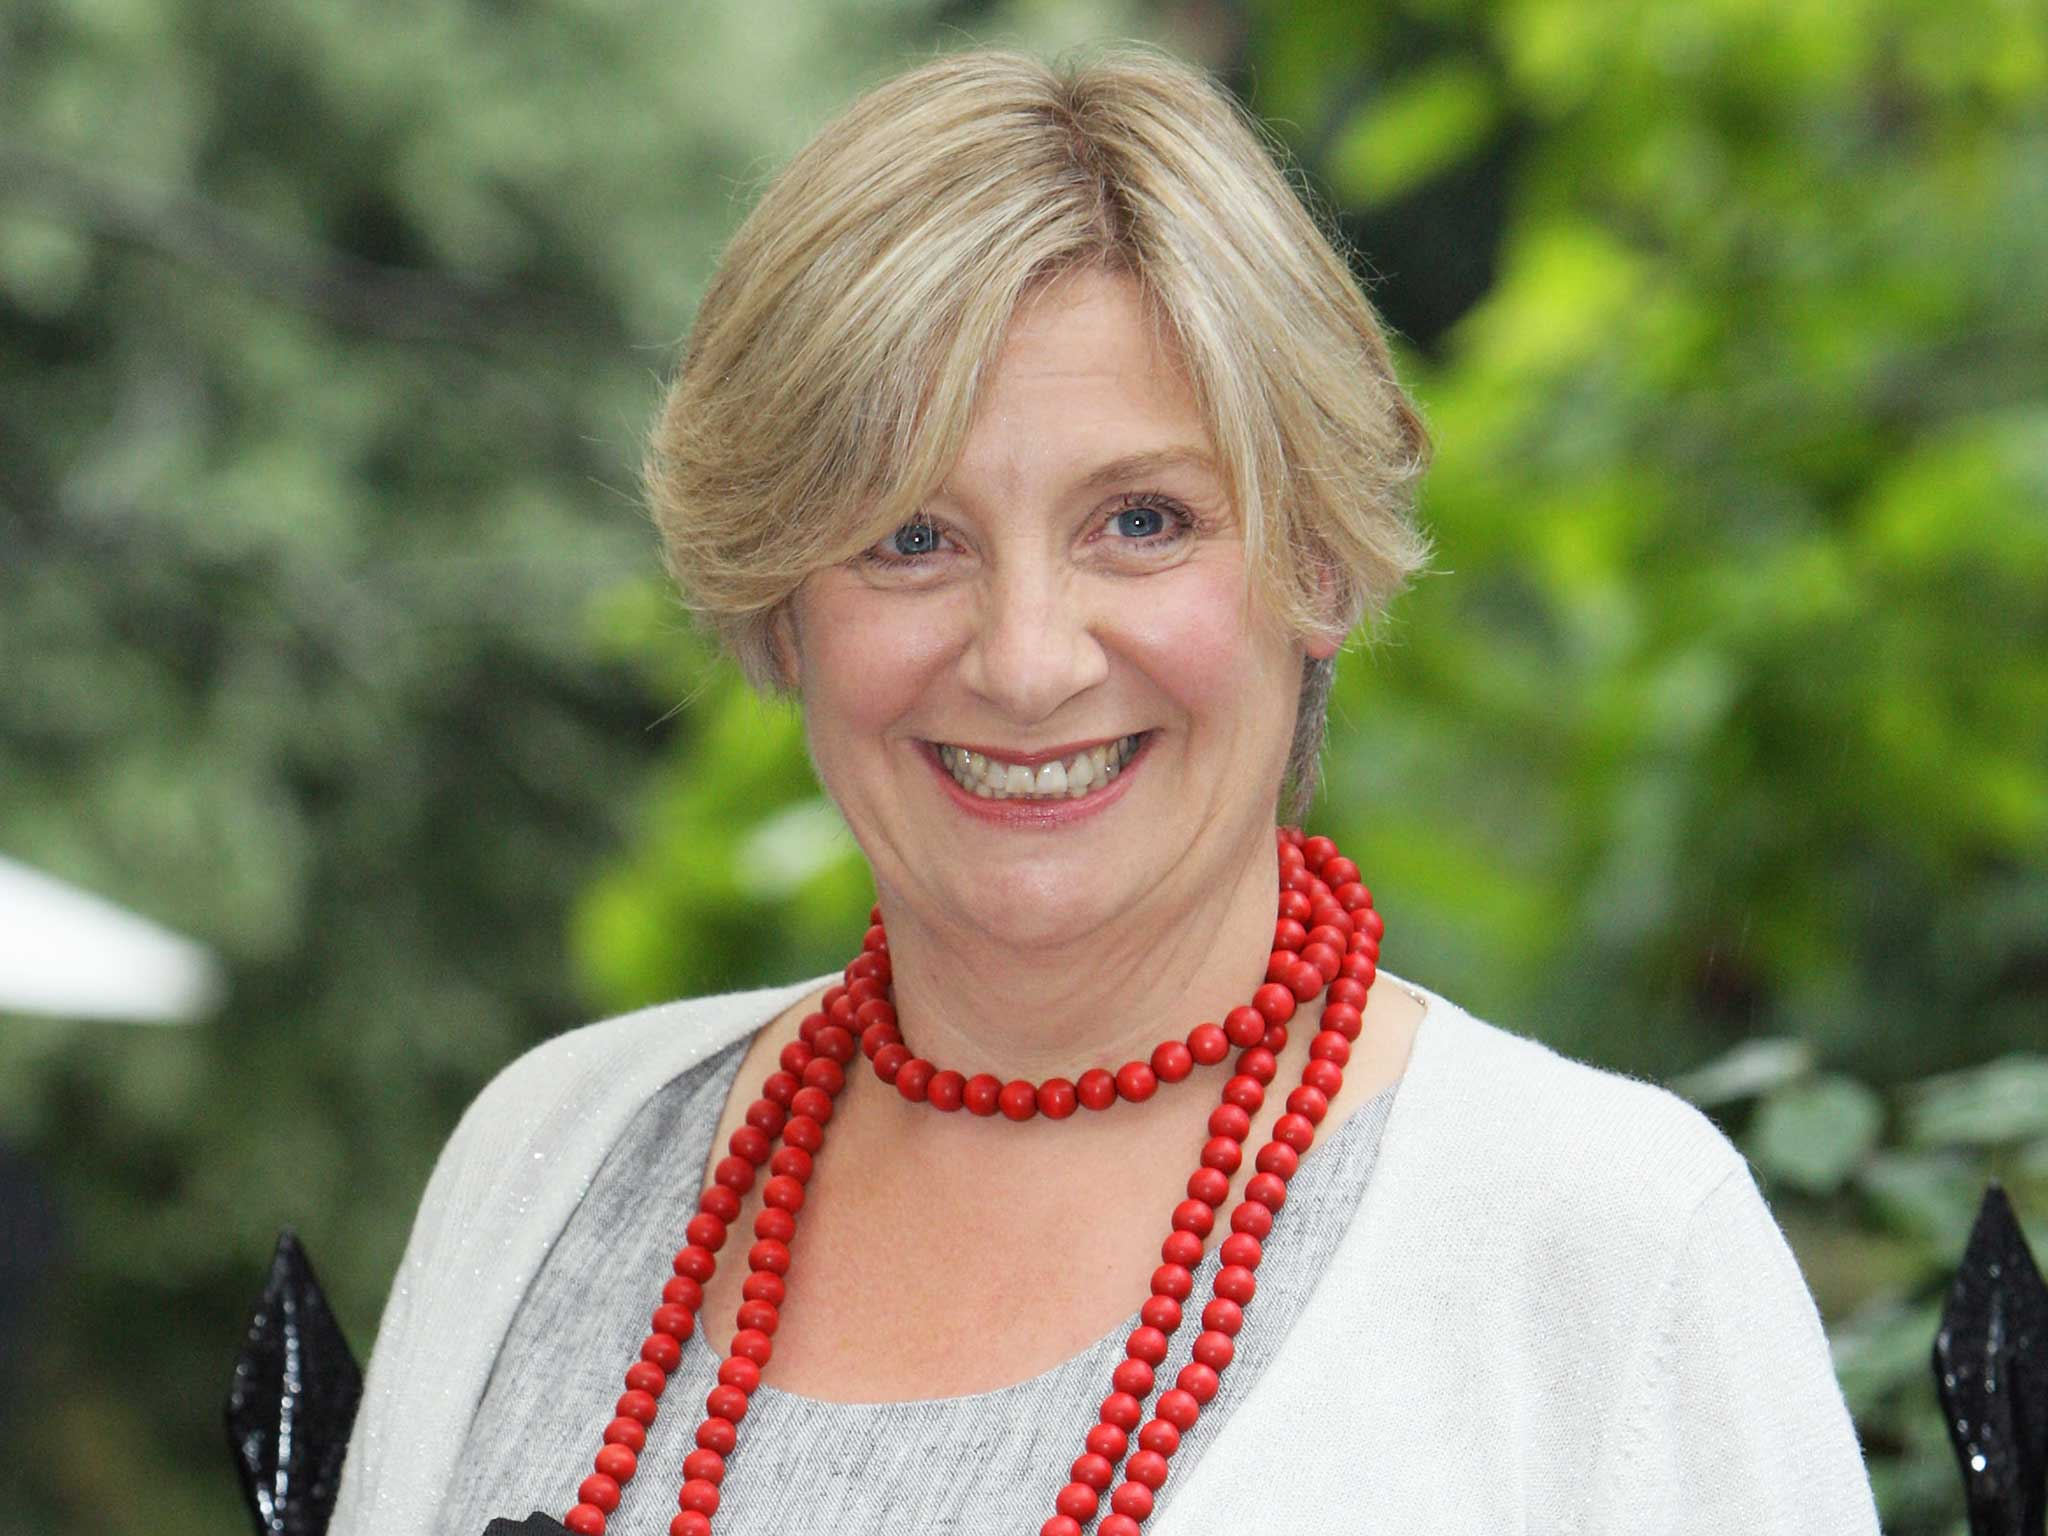 A New Show Dedicated To Victoria Wood Is Being Released